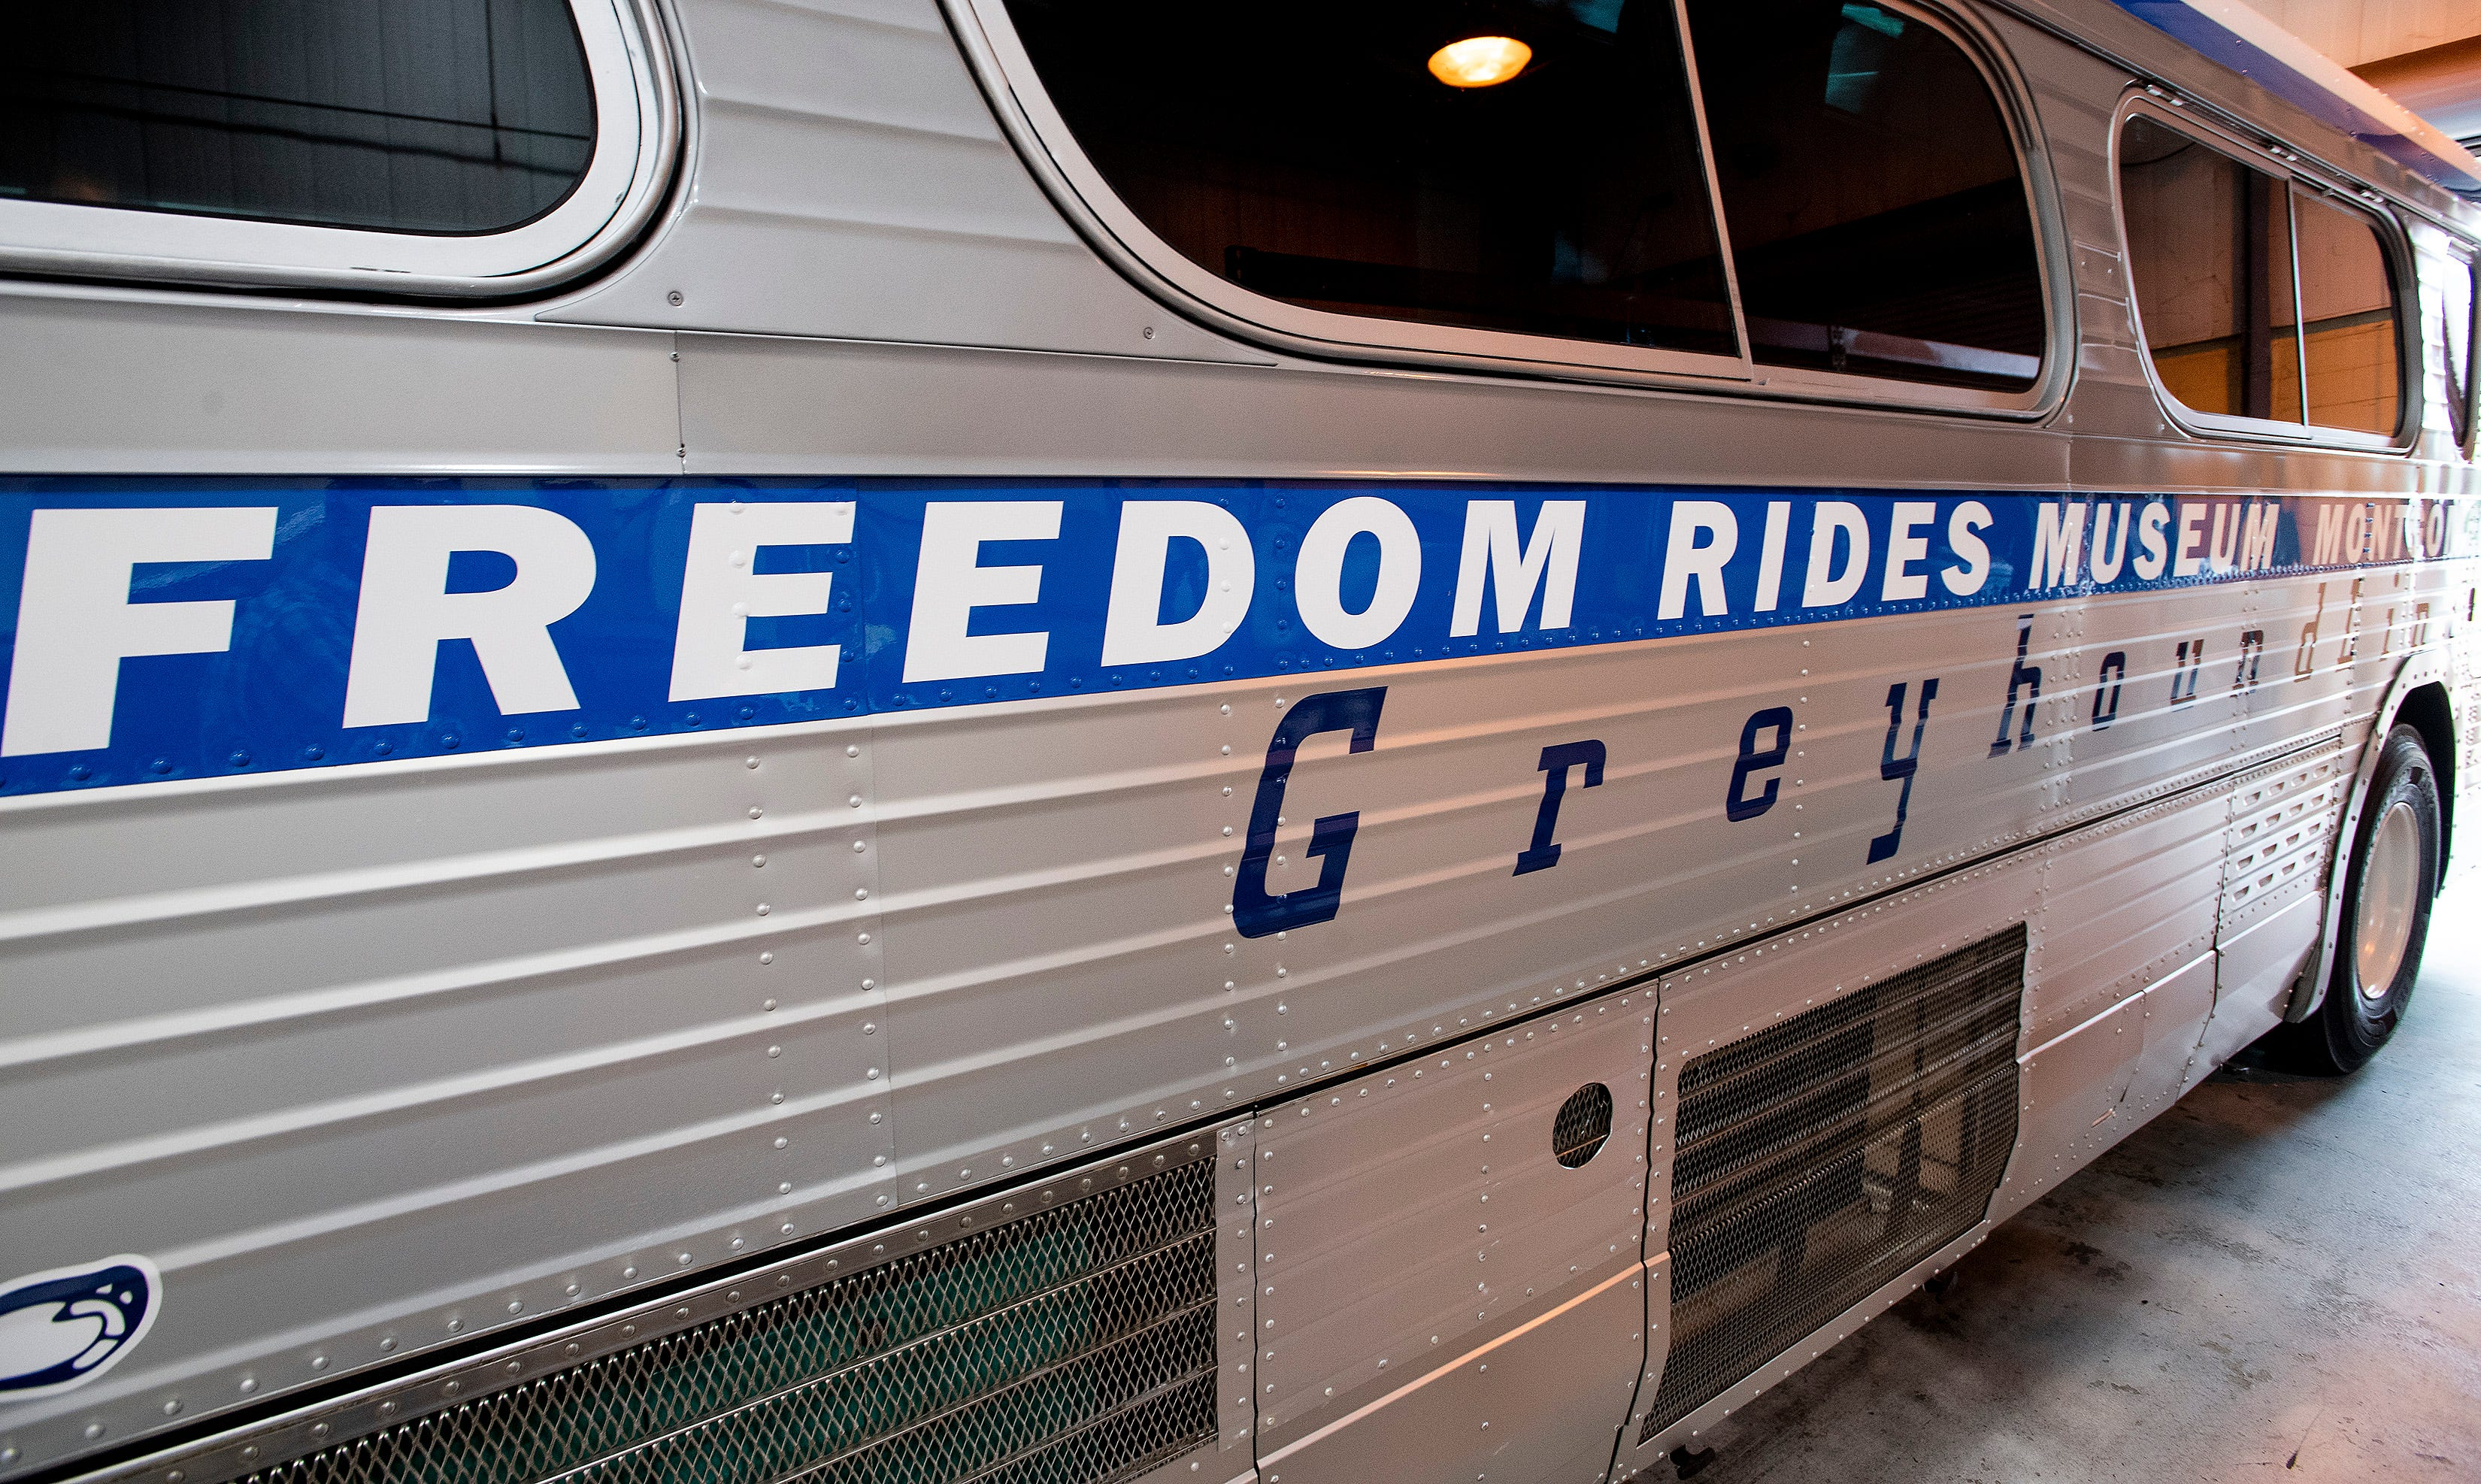 The restored vintage Greyhound bus that is to be unveiled at the Freedom Rides 60th Anniversary Event on Tuesday May 4 in Montgomery, Ala., is seen on Wednesday May 3, 2021.